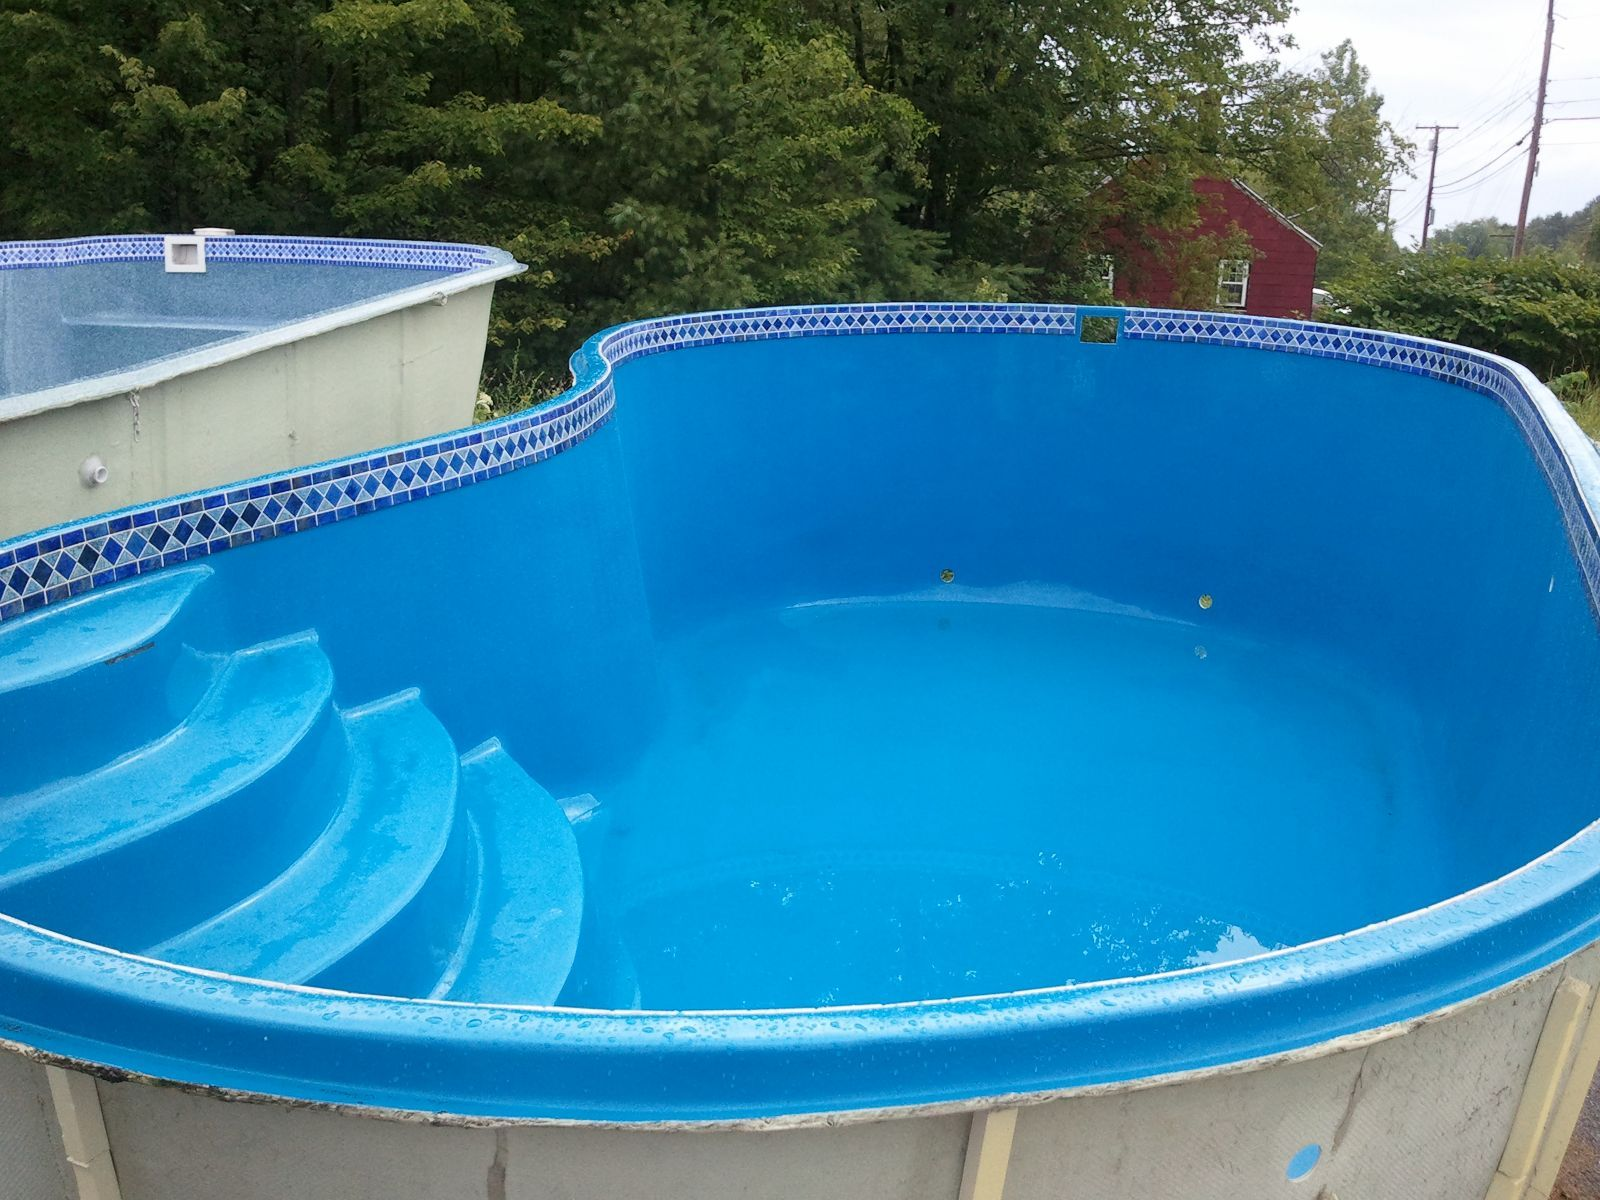 Awesome Kidney Shaped Above Ground Pool in Blue Hues ...